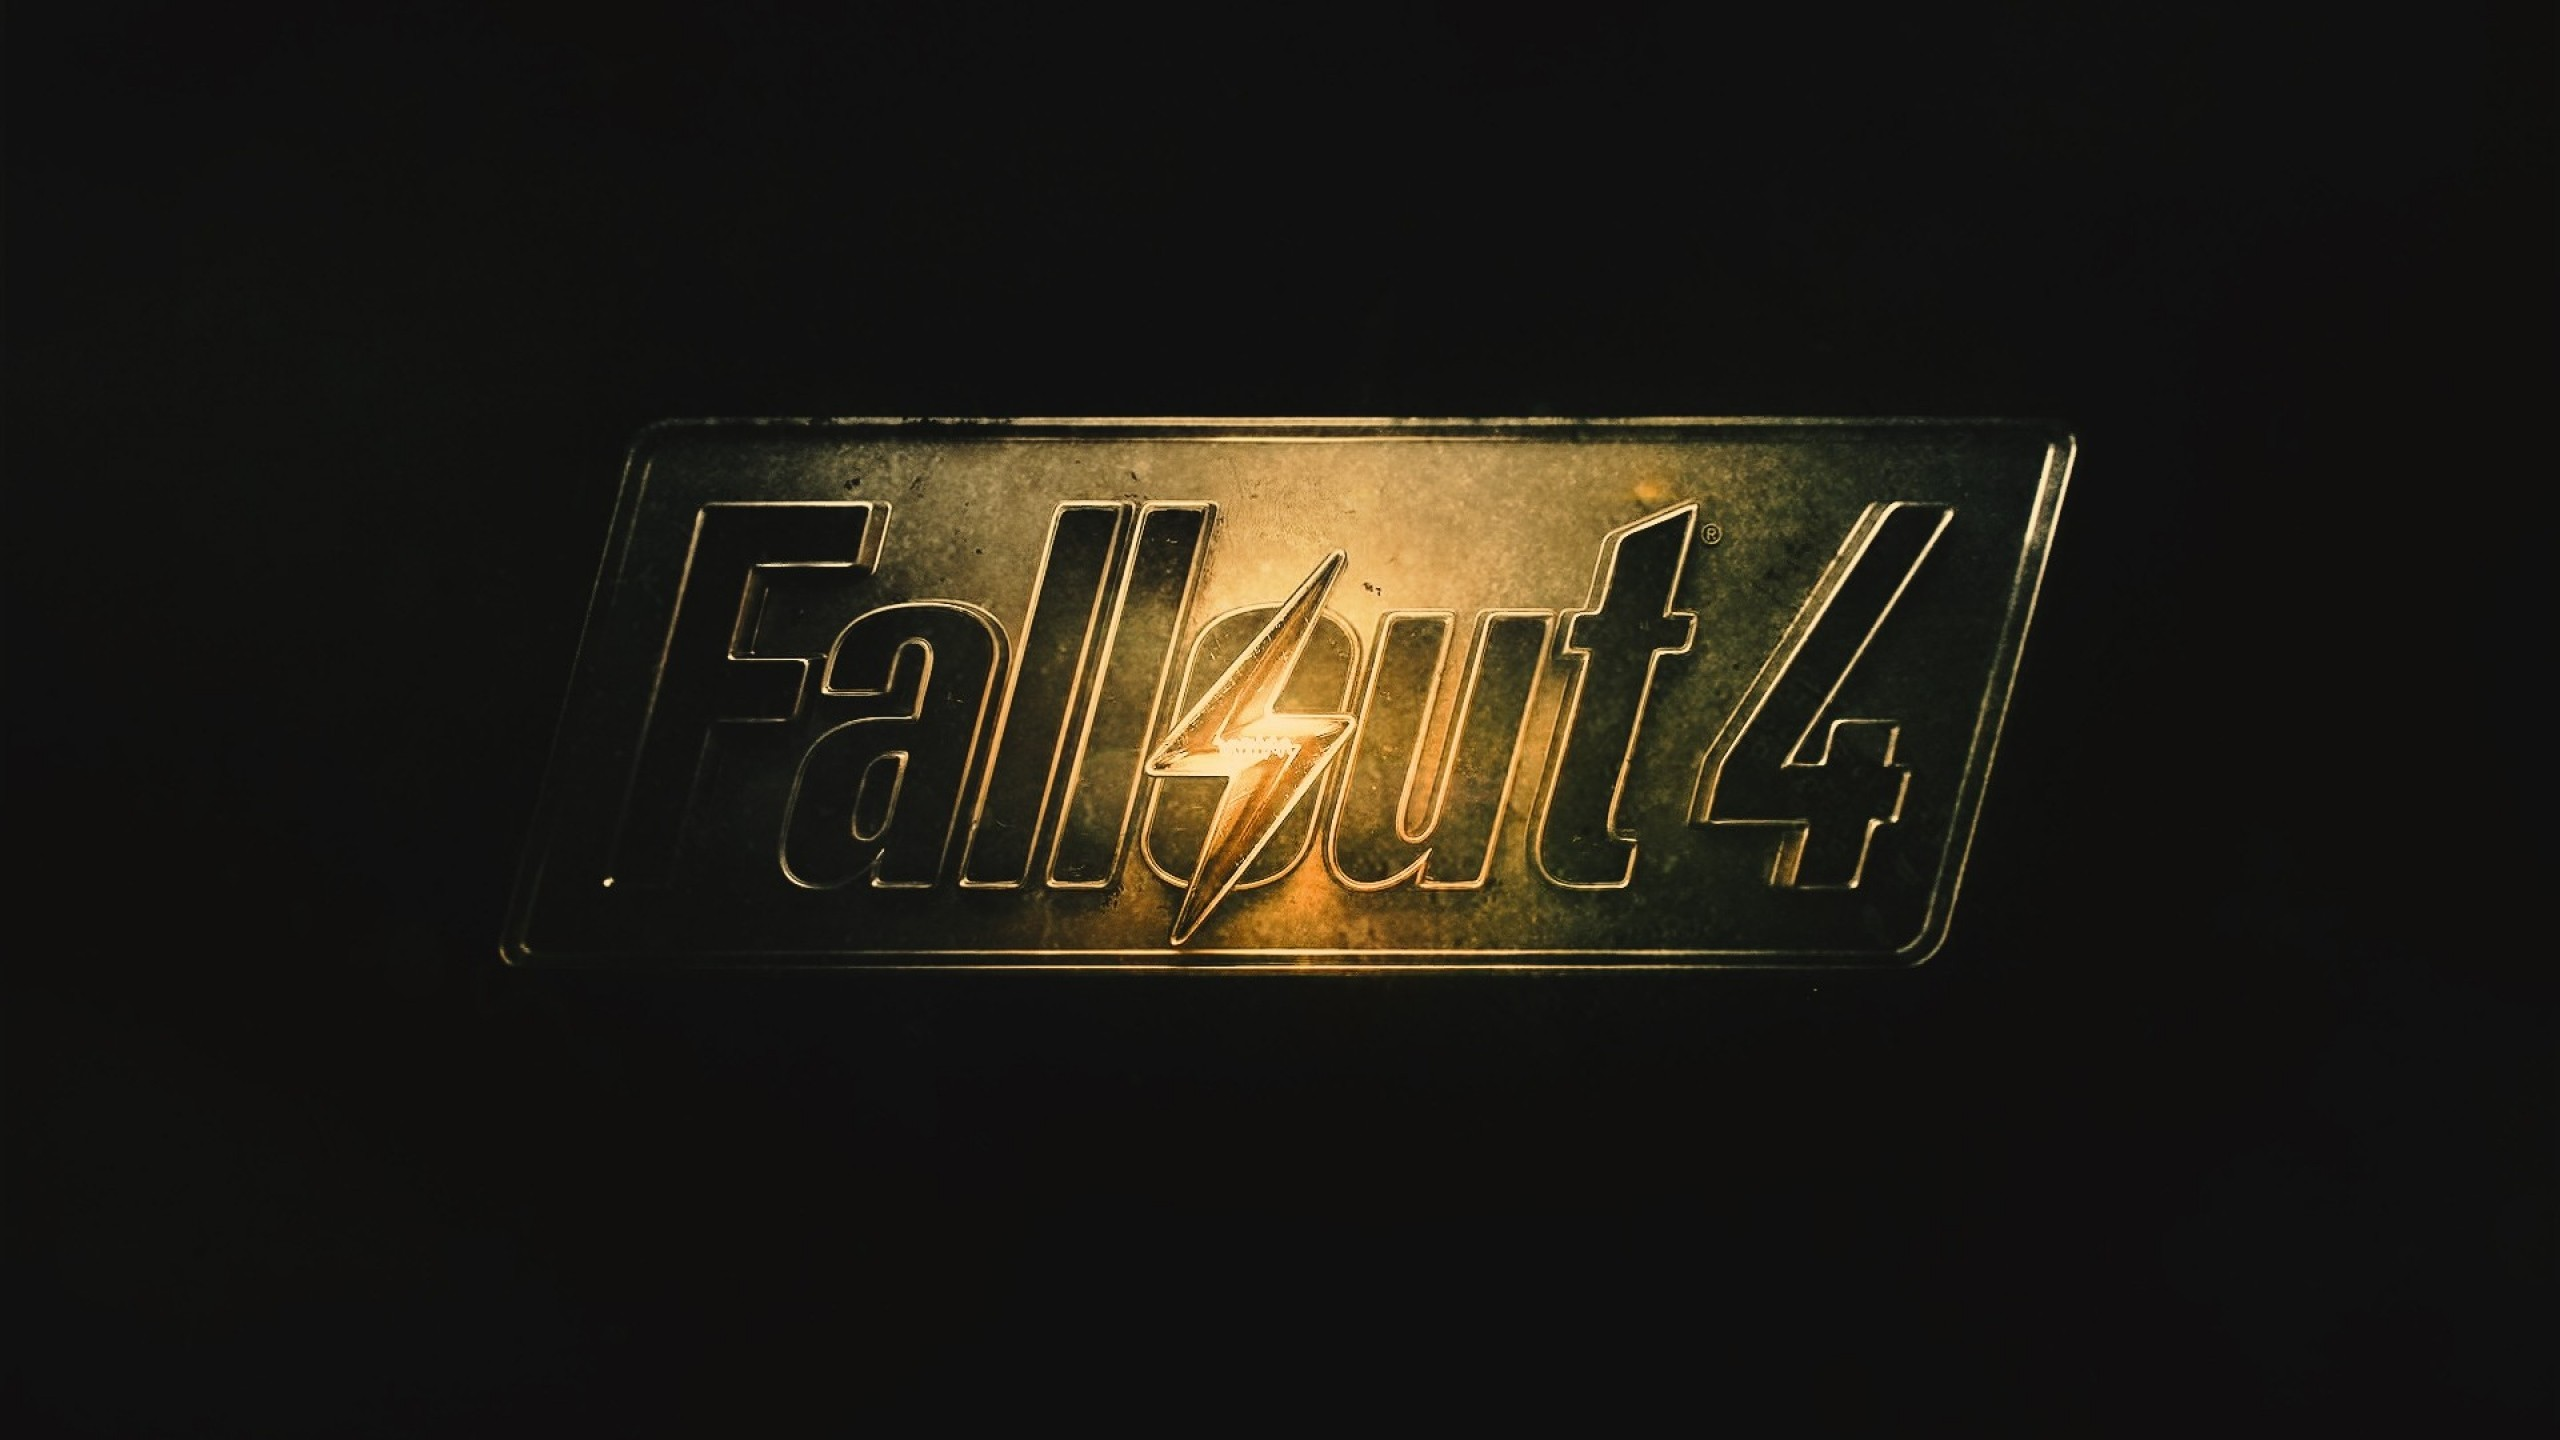 Fallout Background Download Free Cool Full HD Wallpapers For Desktop Computers And